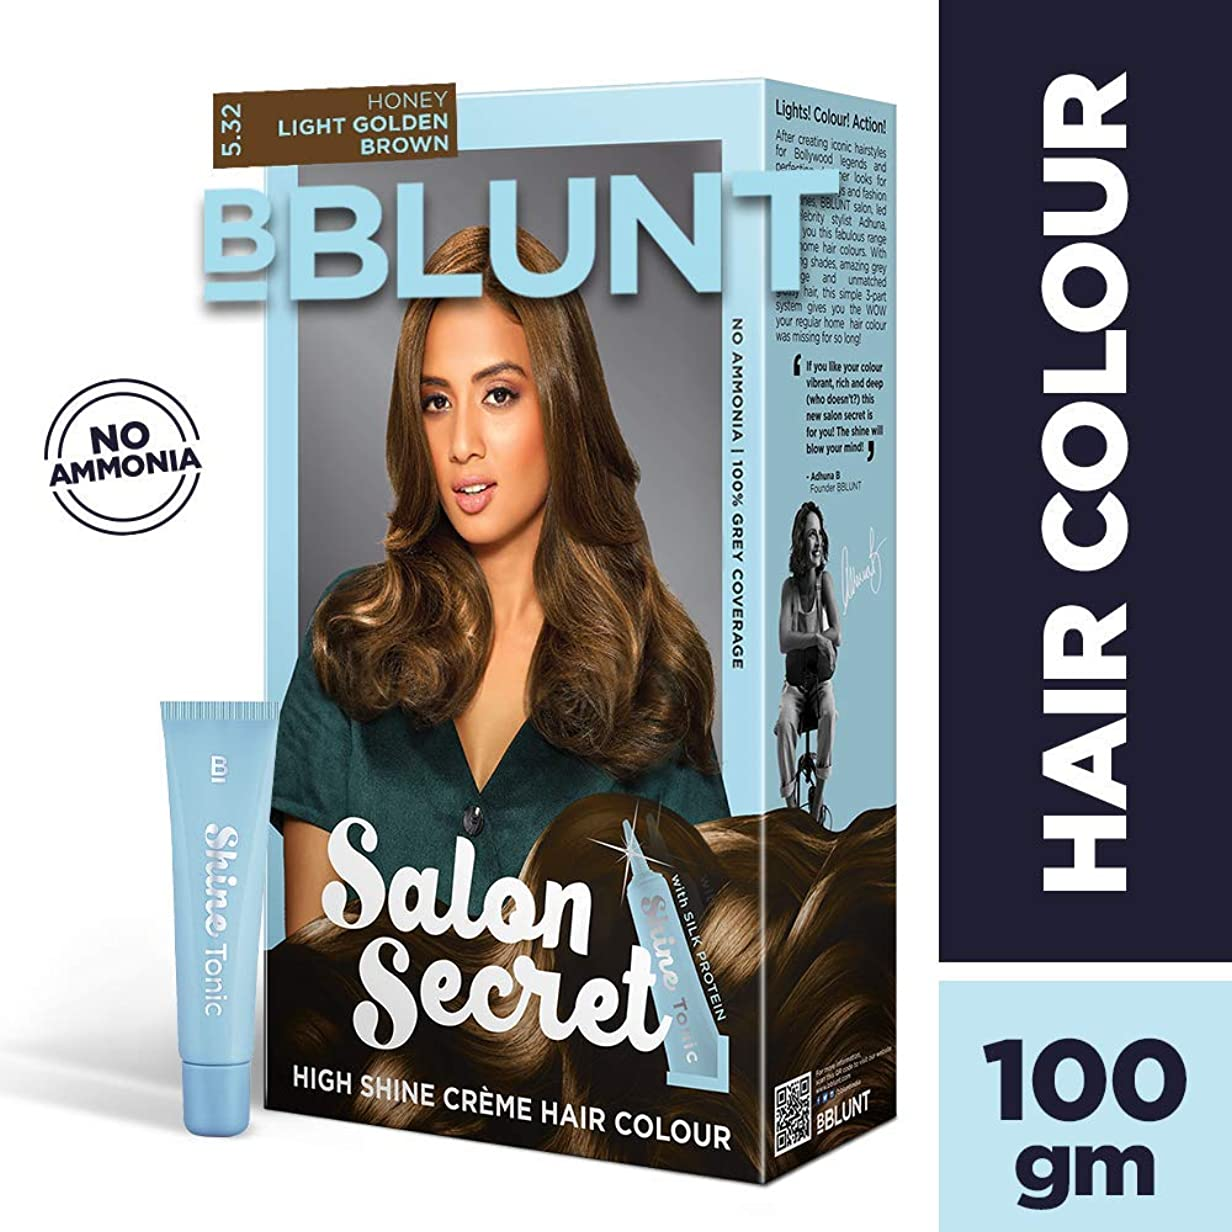 実行脚平衡BBLUNT Salon Secret High Shine Creme Hair Colour, Honey Light Golden Brown 5.32, 100g with Shine Tonic, 8ml